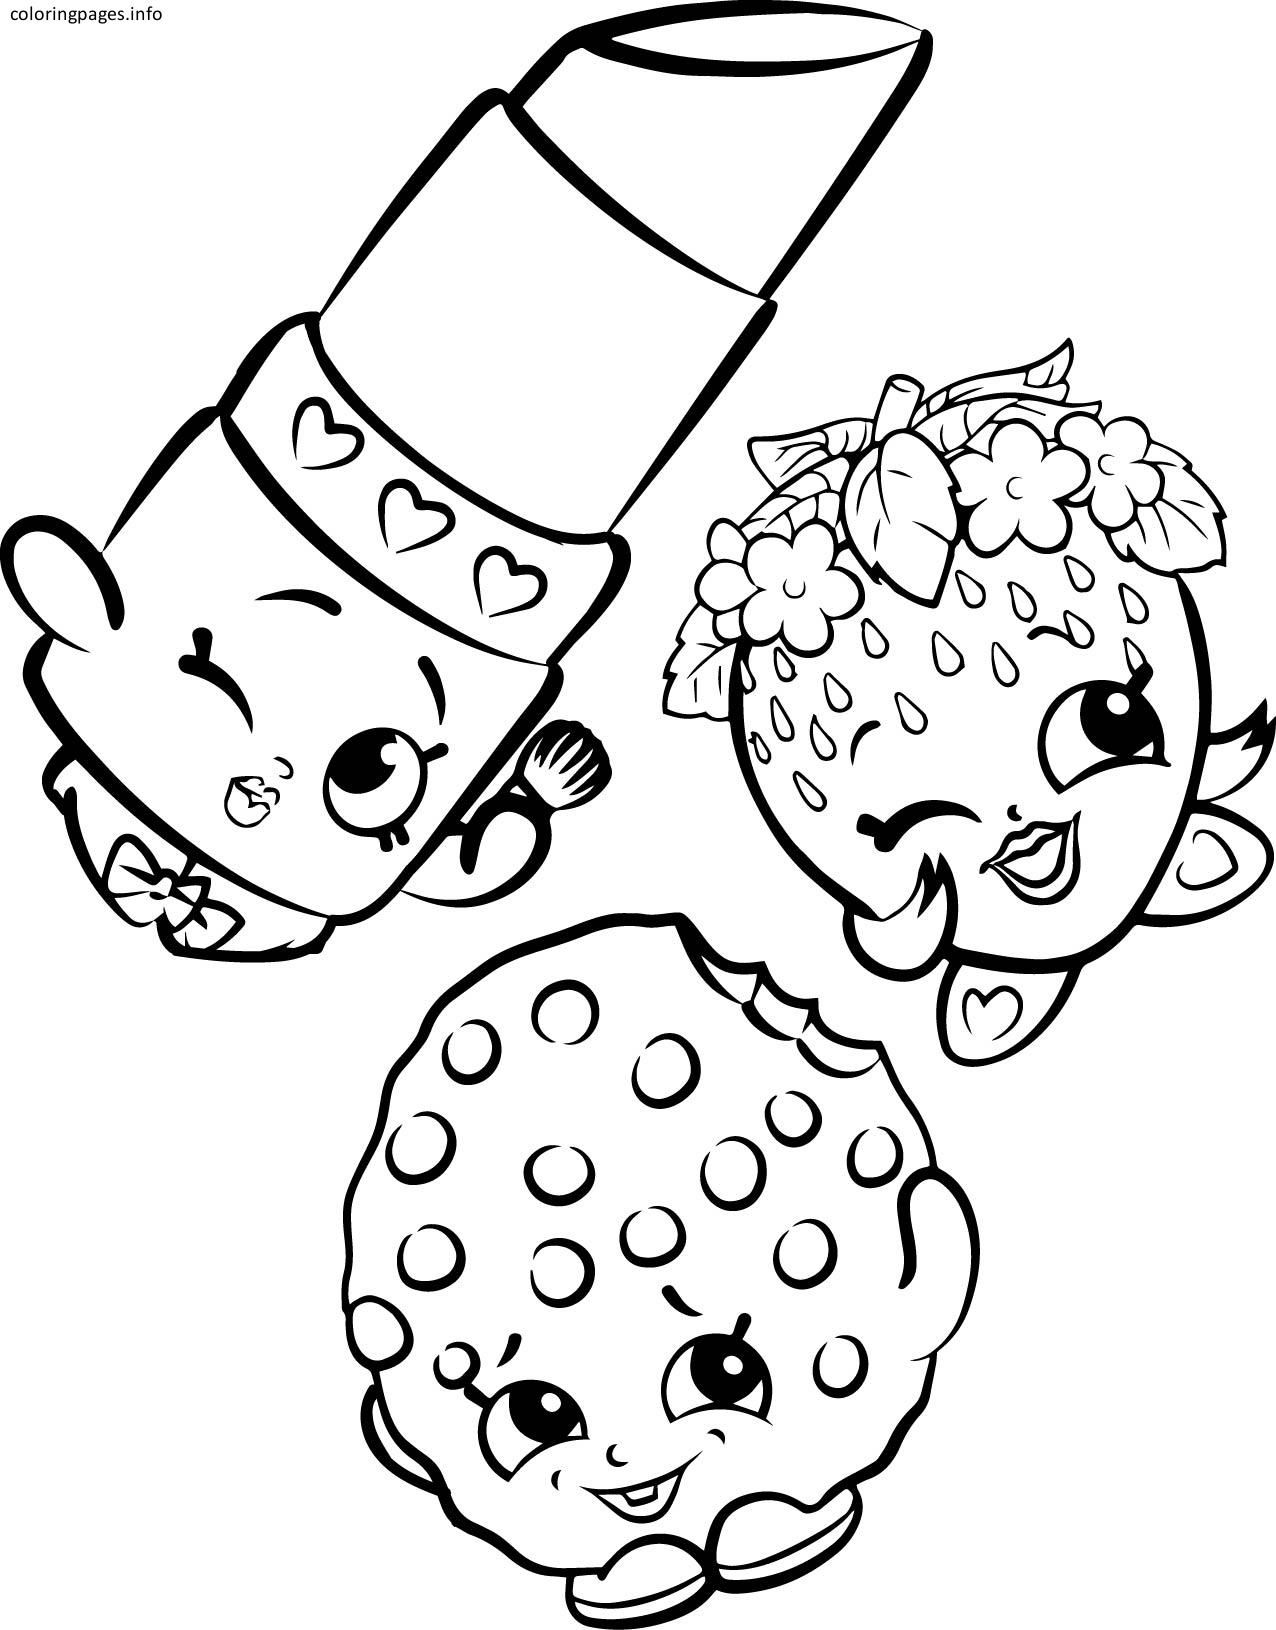 Shopkins Coloring Pages Images (With images) Shopkins coloring pages free printable Shopkin